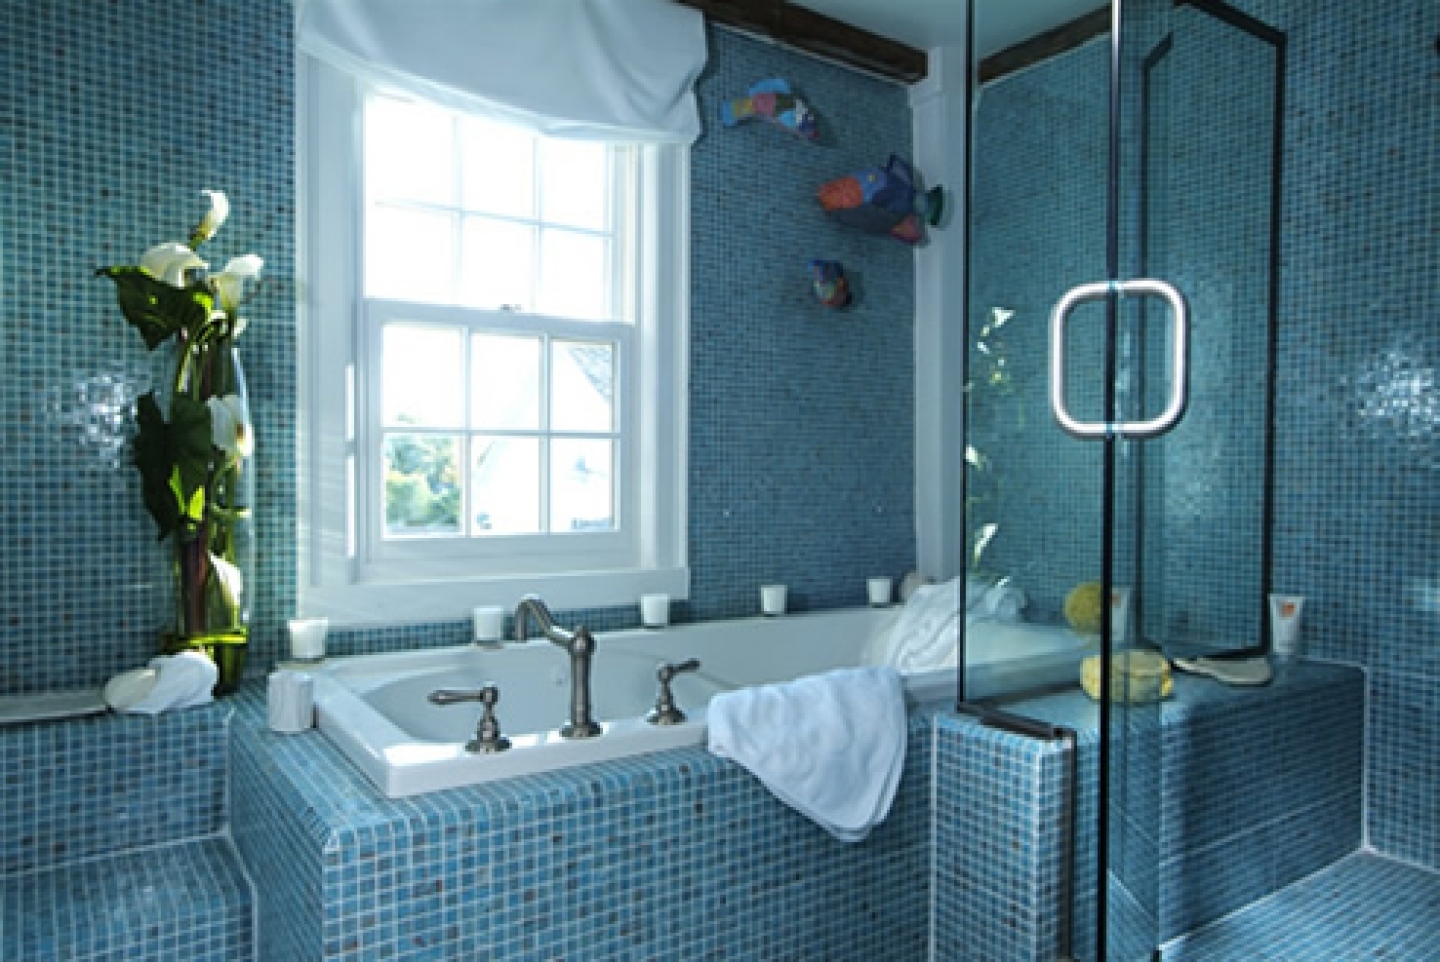 40 vintage blue bathroom tiles ideas and pictures for Great small bathroom designs